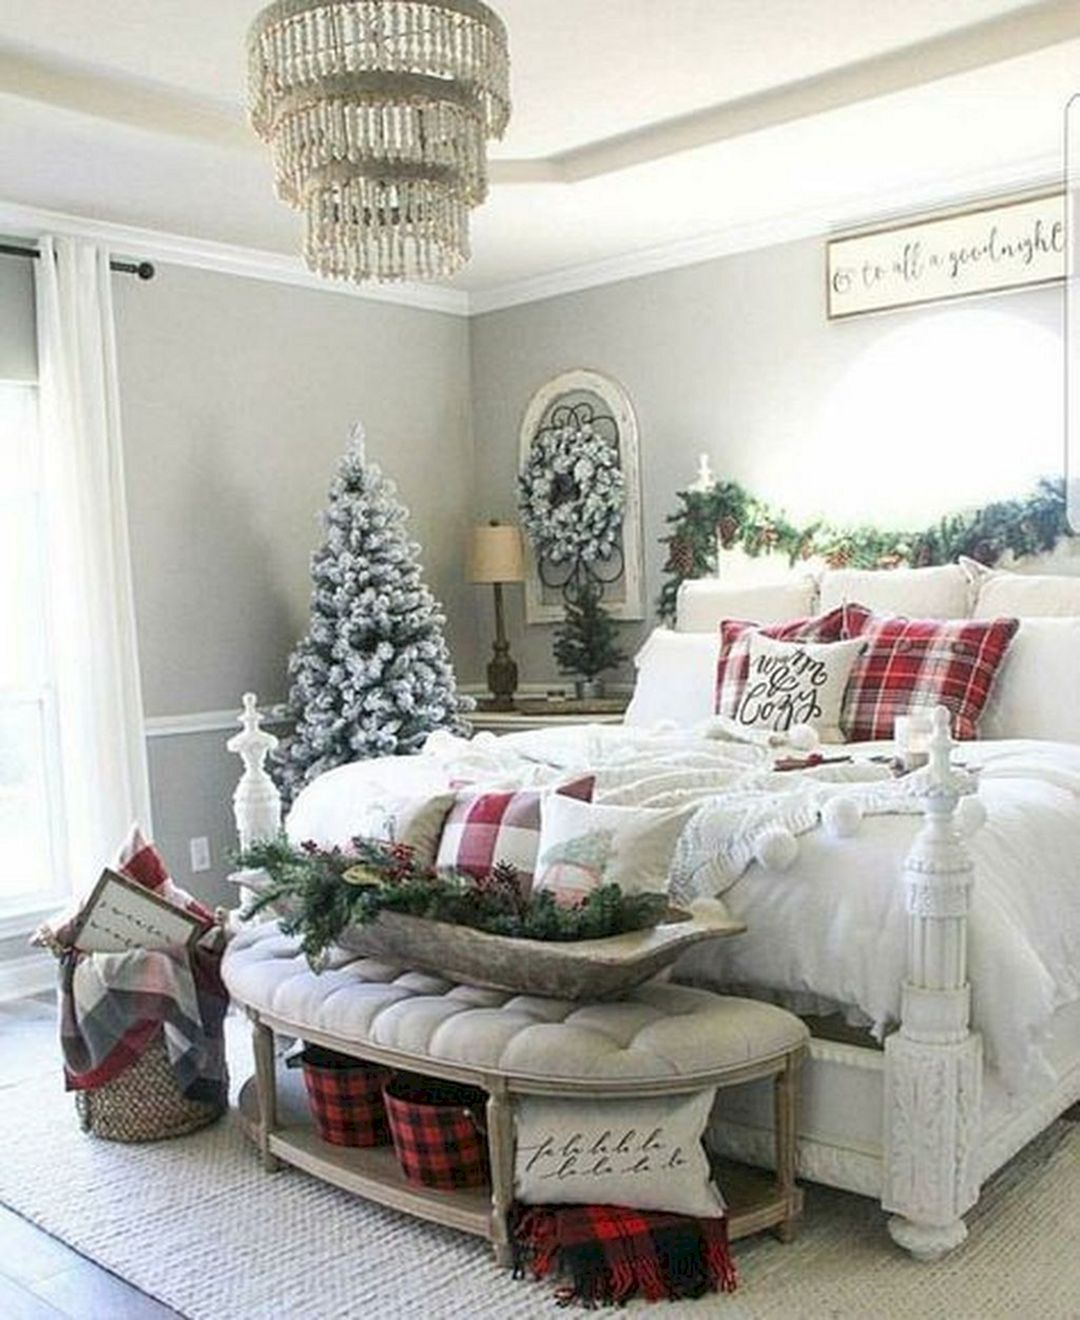 Top 10 Christmas Bedroom Ideas For Prepare Christmas Celebration Dexorate Christmas Room Decor Christmas Bedroom Christmas Decorations Bedroom